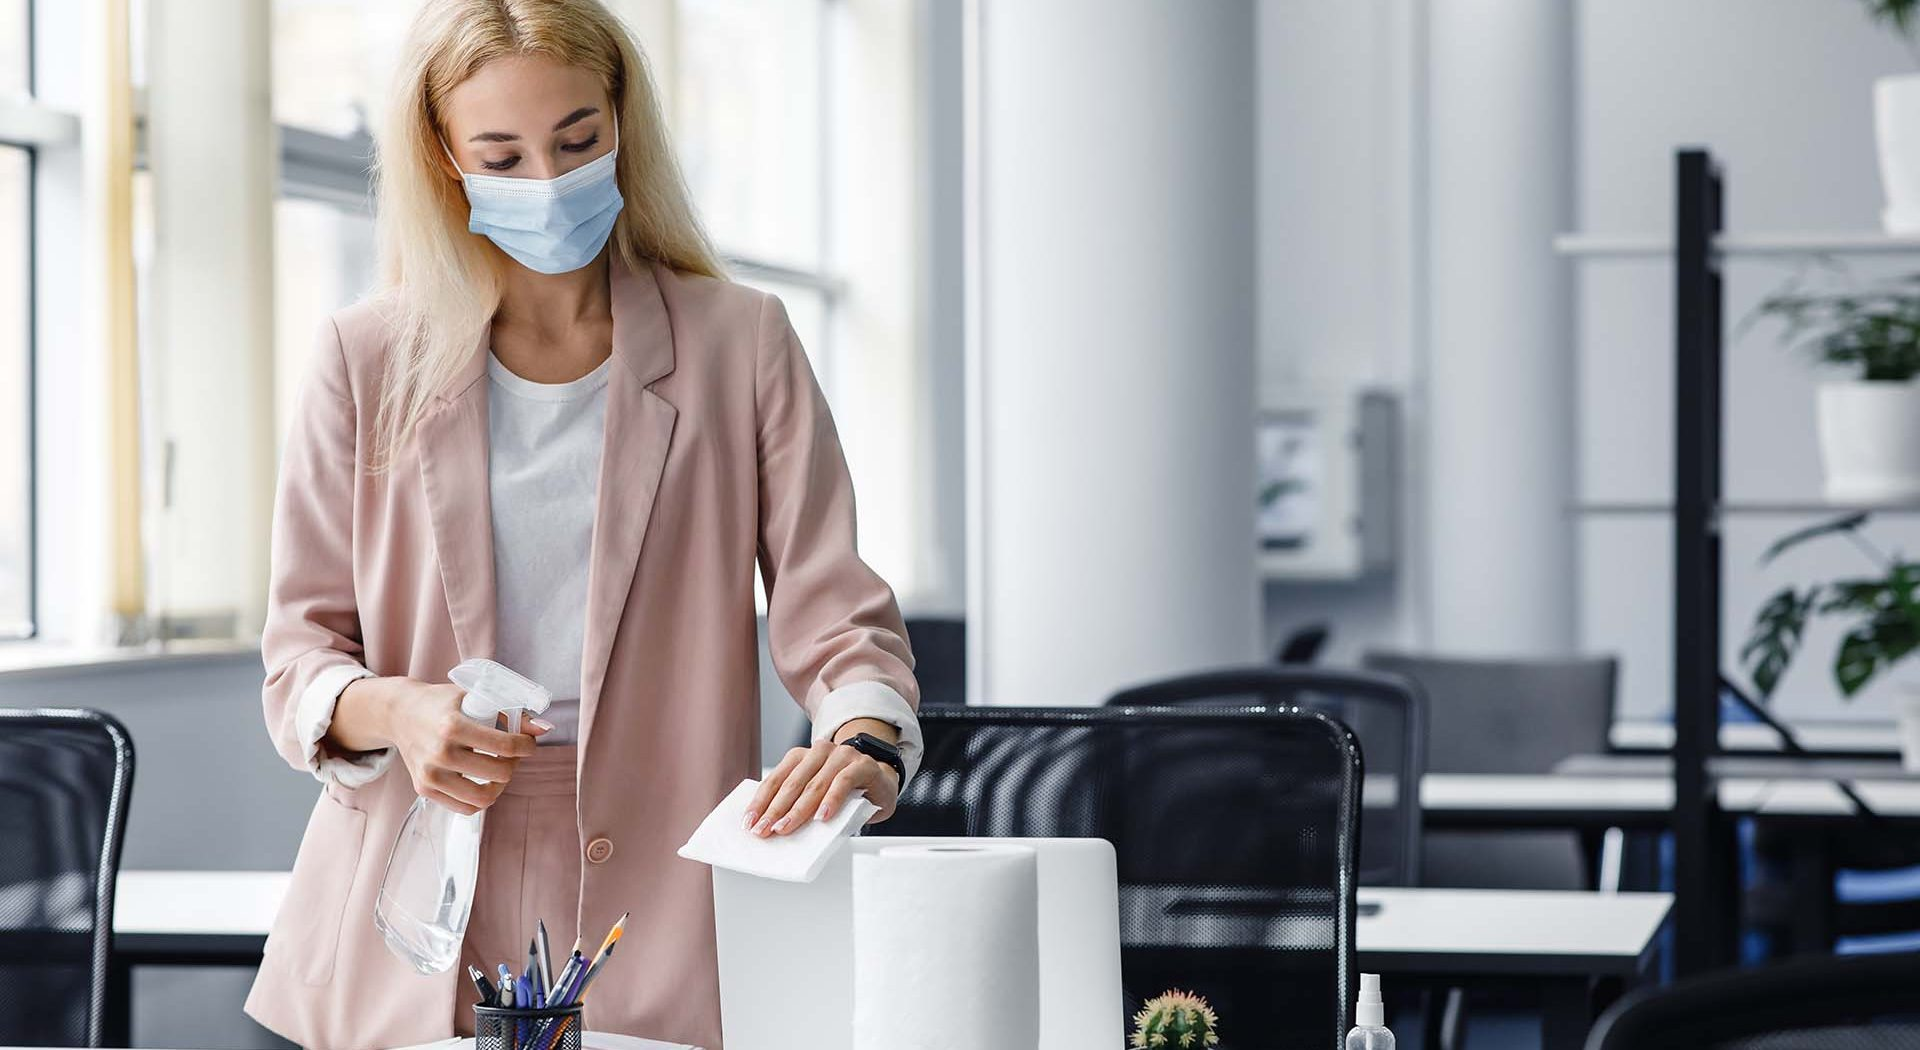 5 tips for keeping the workplace dust free and pest free